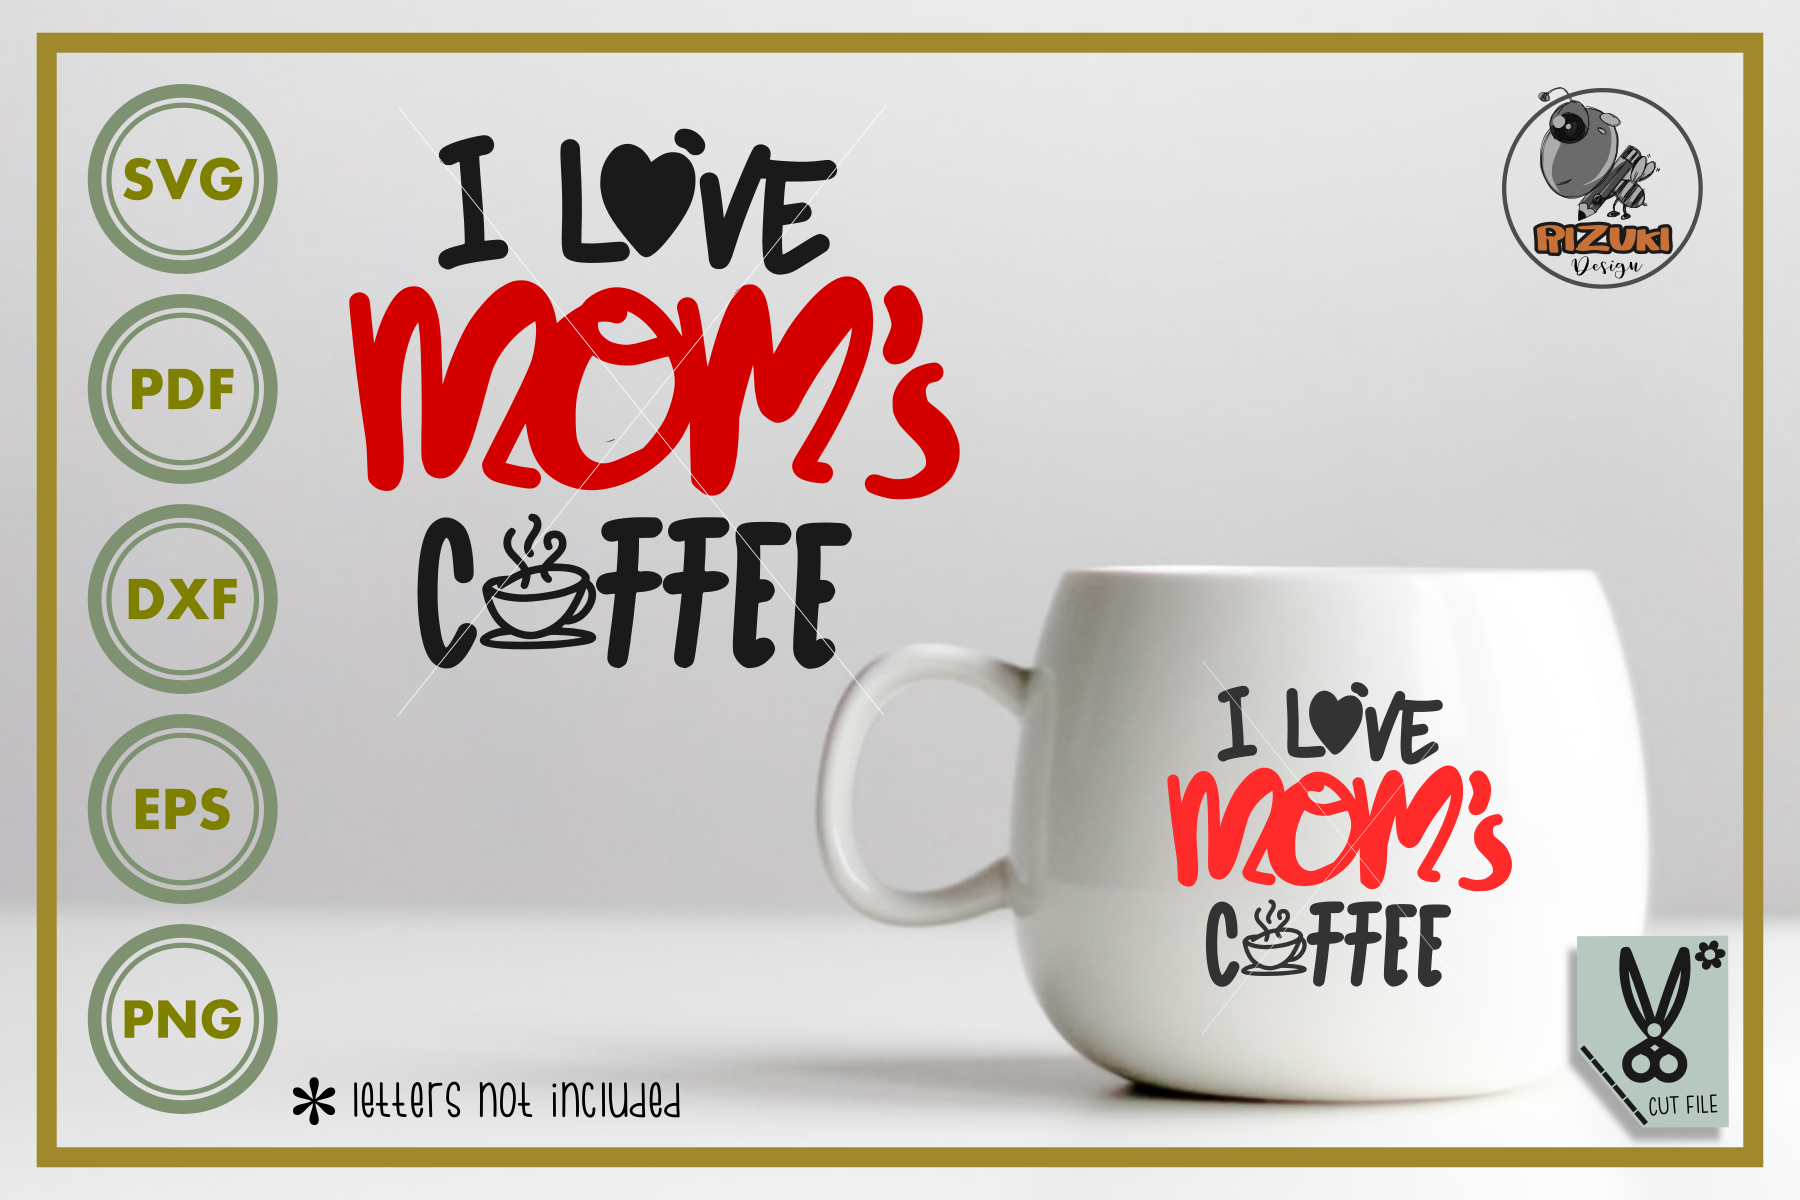 Download Free Mother Day I Love Mom S Coffee Graphic By Rizuki Store for Cricut Explore, Silhouette and other cutting machines.